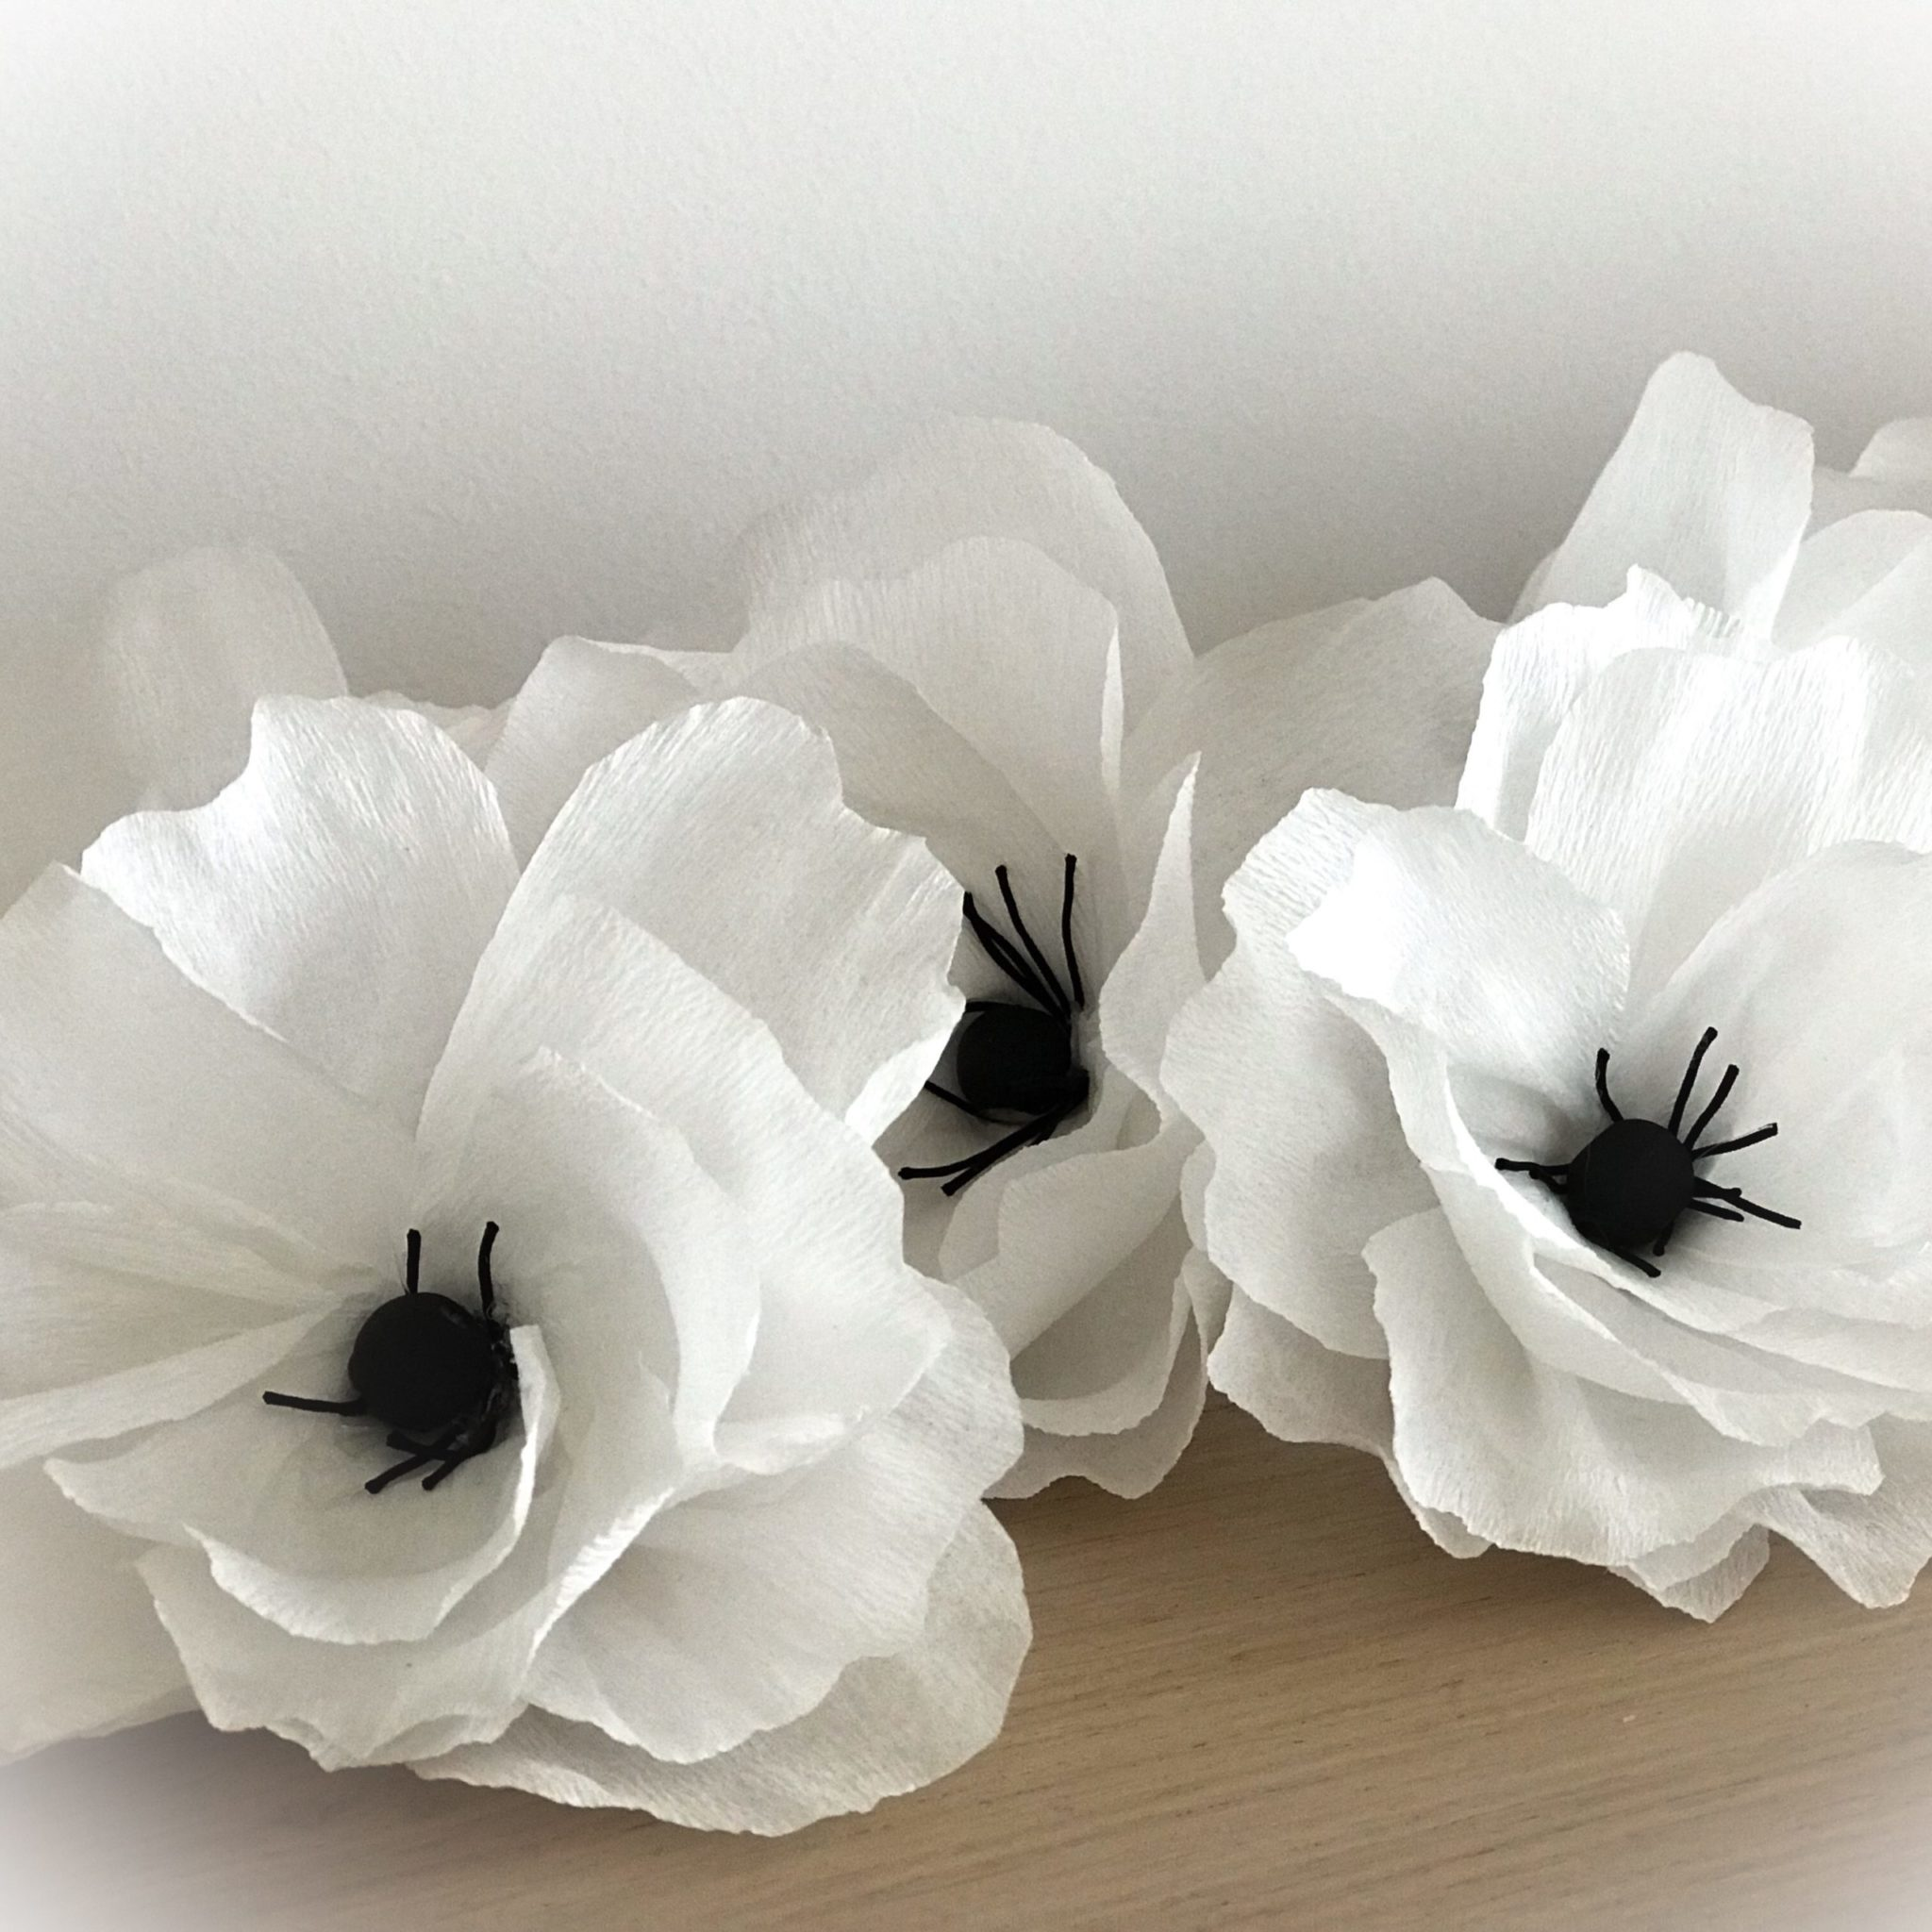 Spring Is Nature's Way Of Saying Let's Party-headband white flower-detail